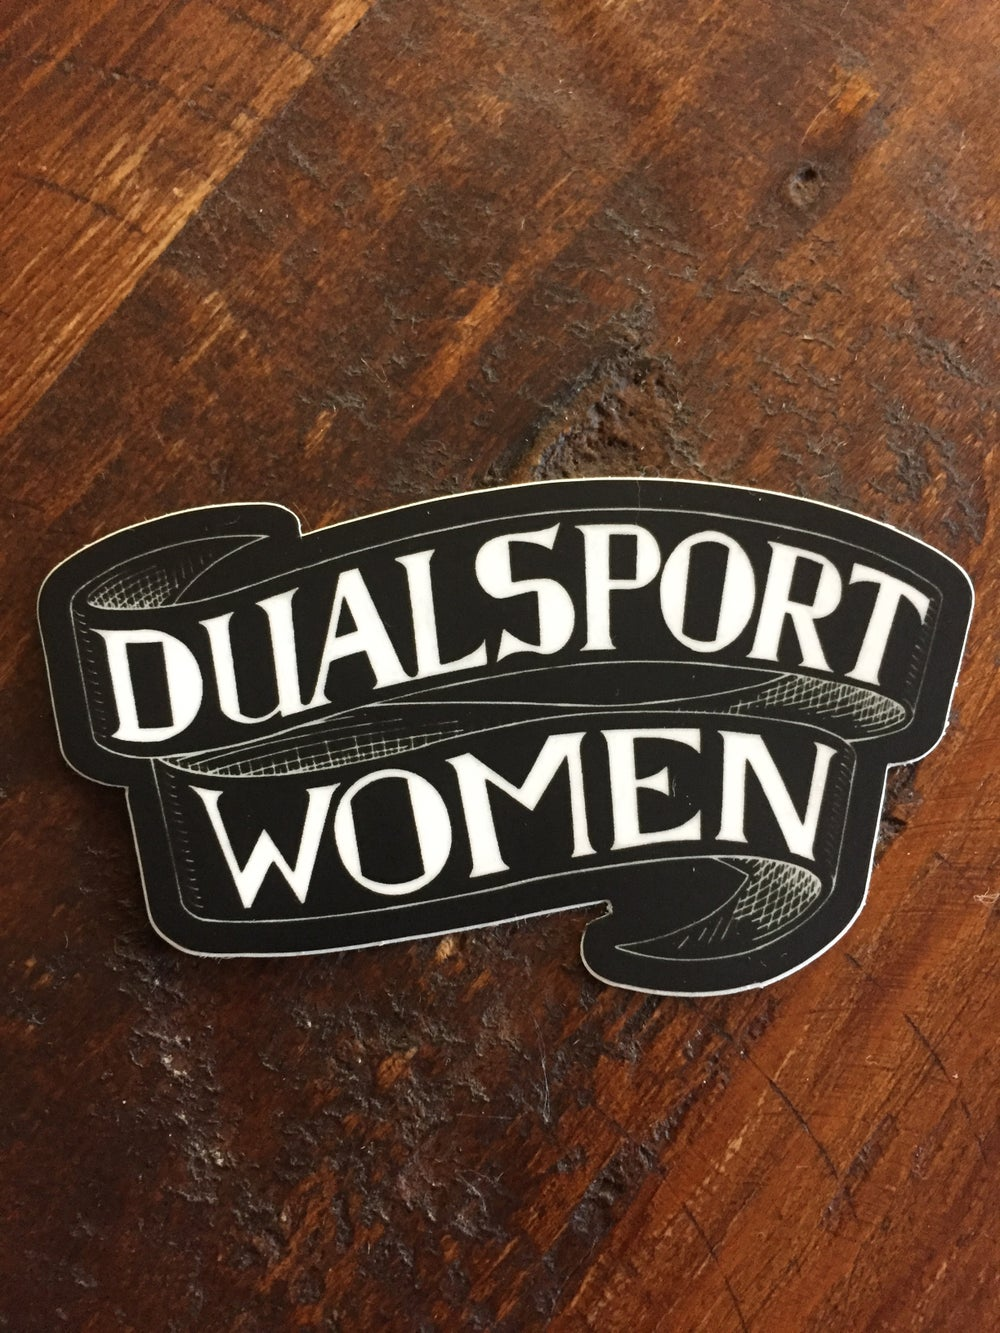 Image of Dualsport Women Sticker in black w/ free shipping